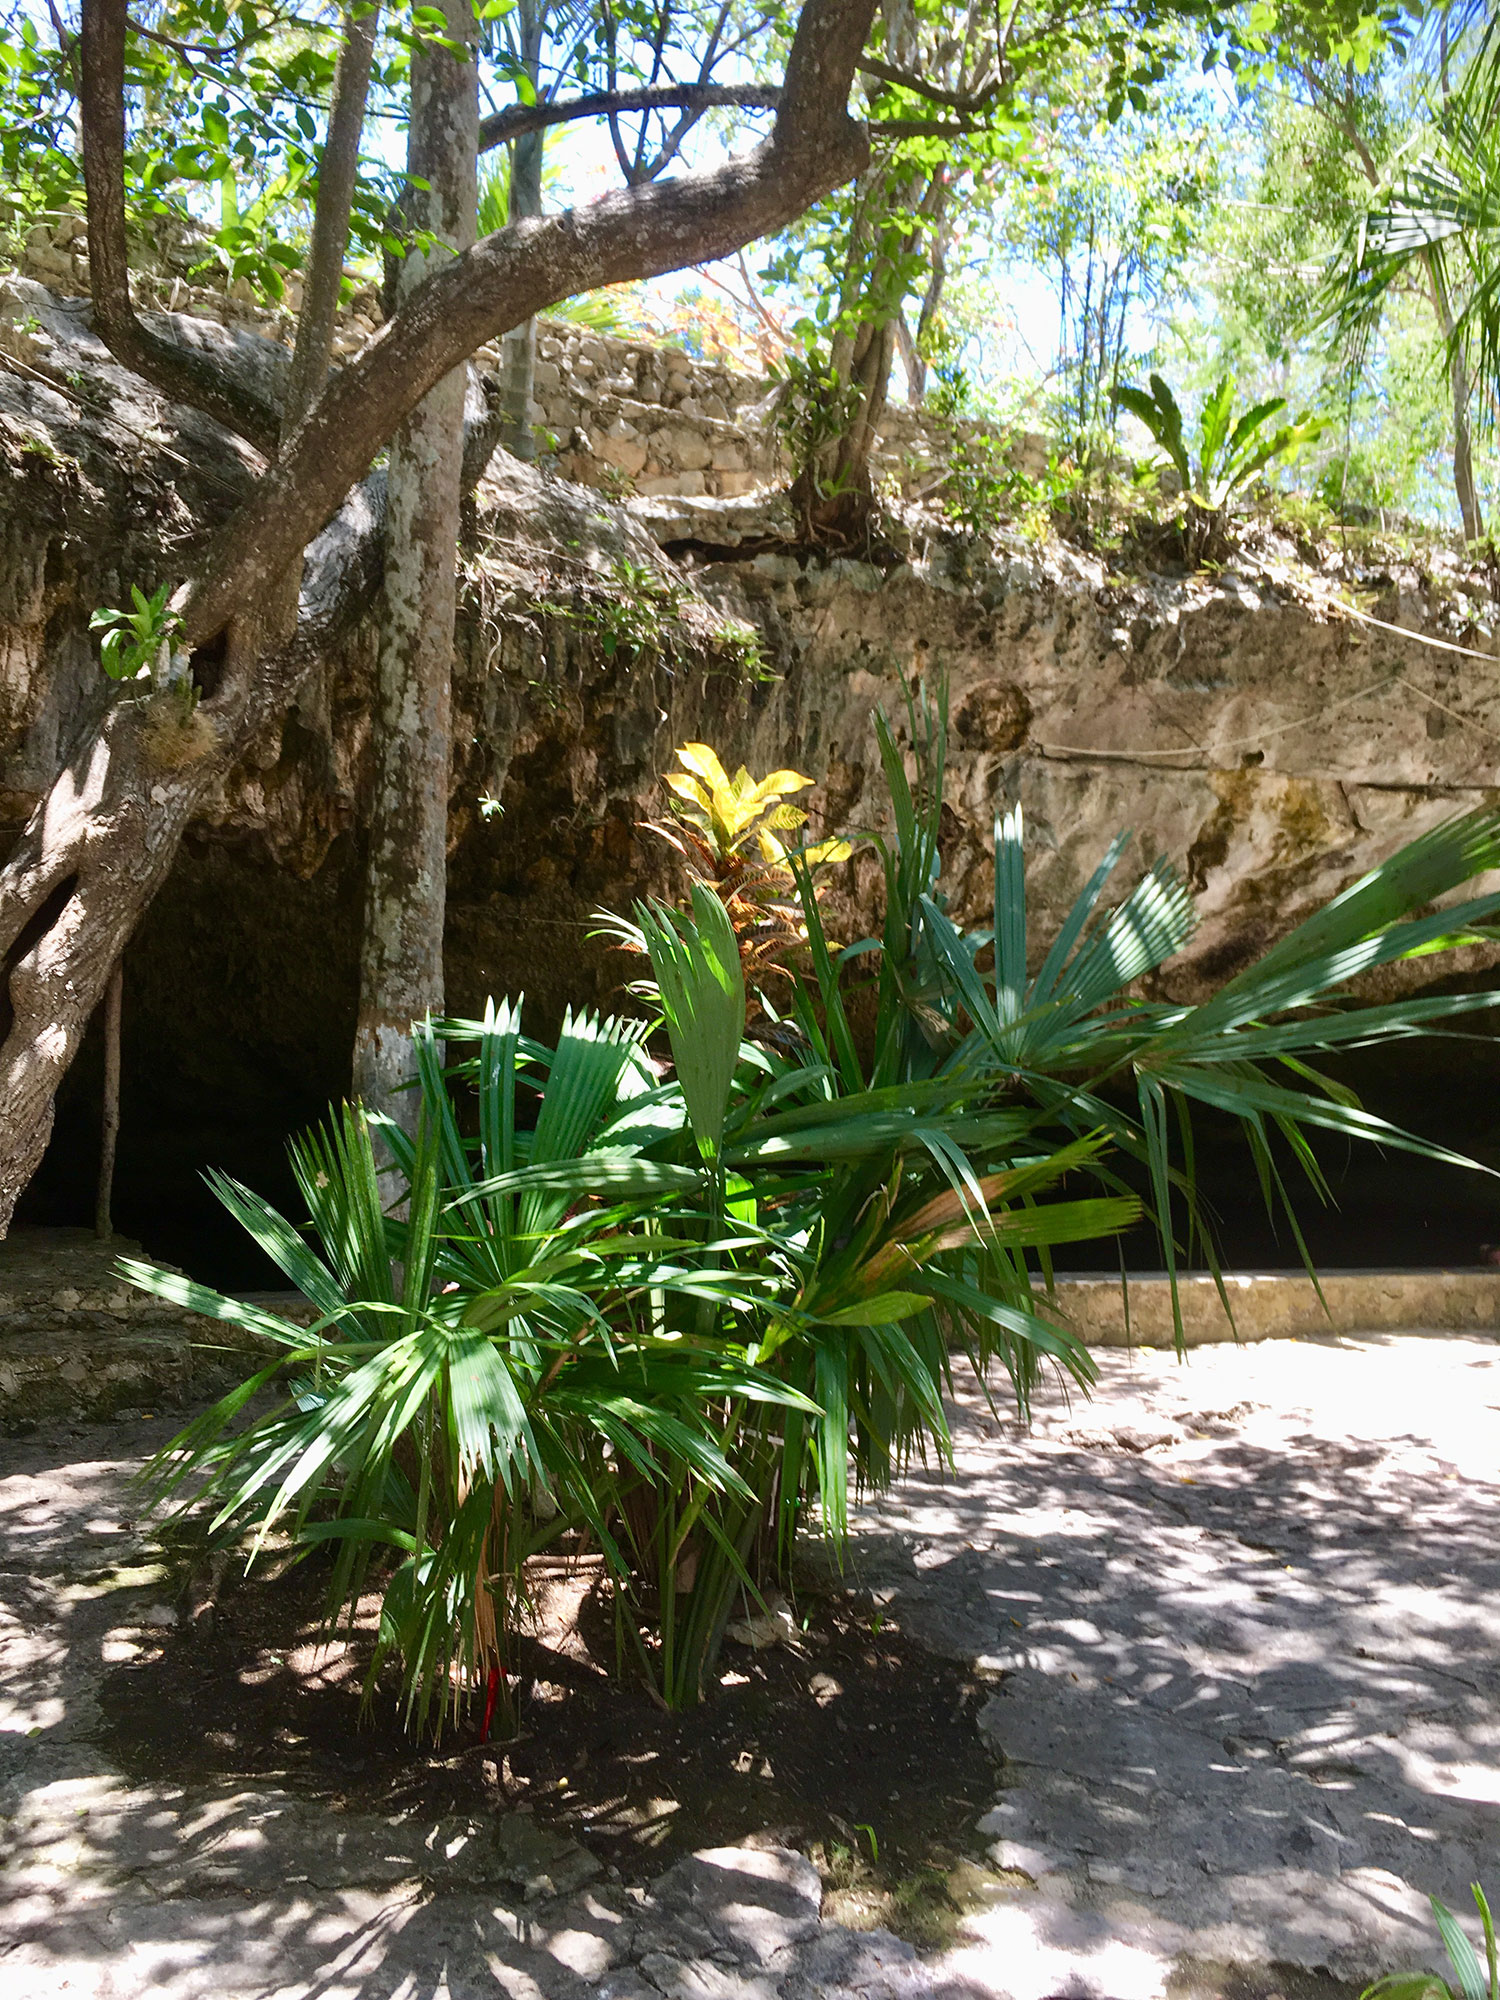 The cave of the cenote is semi-open.